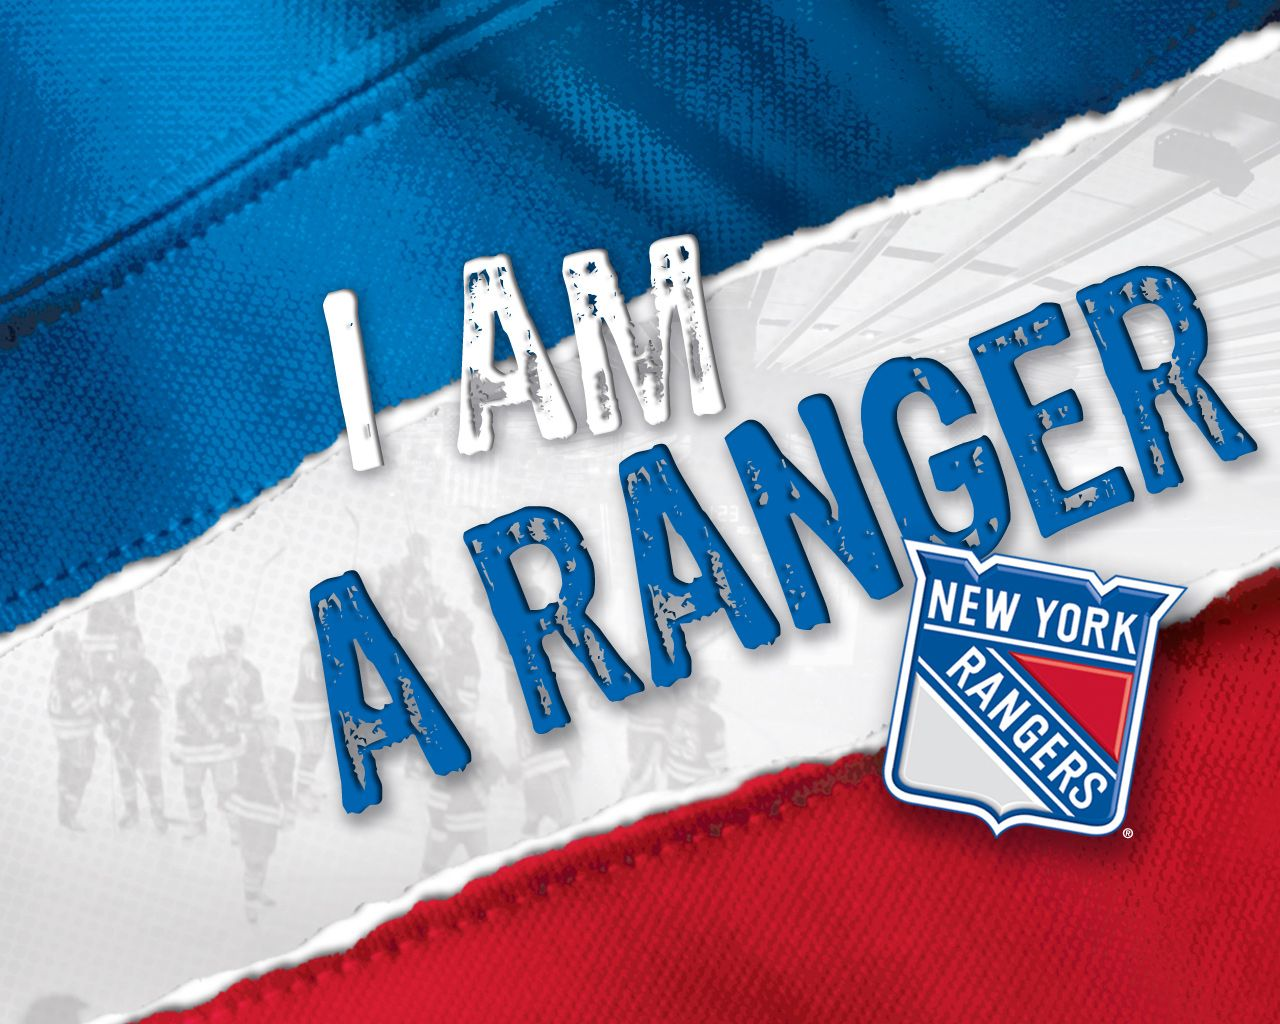 New York Rangers Rangers Wallpaper New York Rangers Ranger